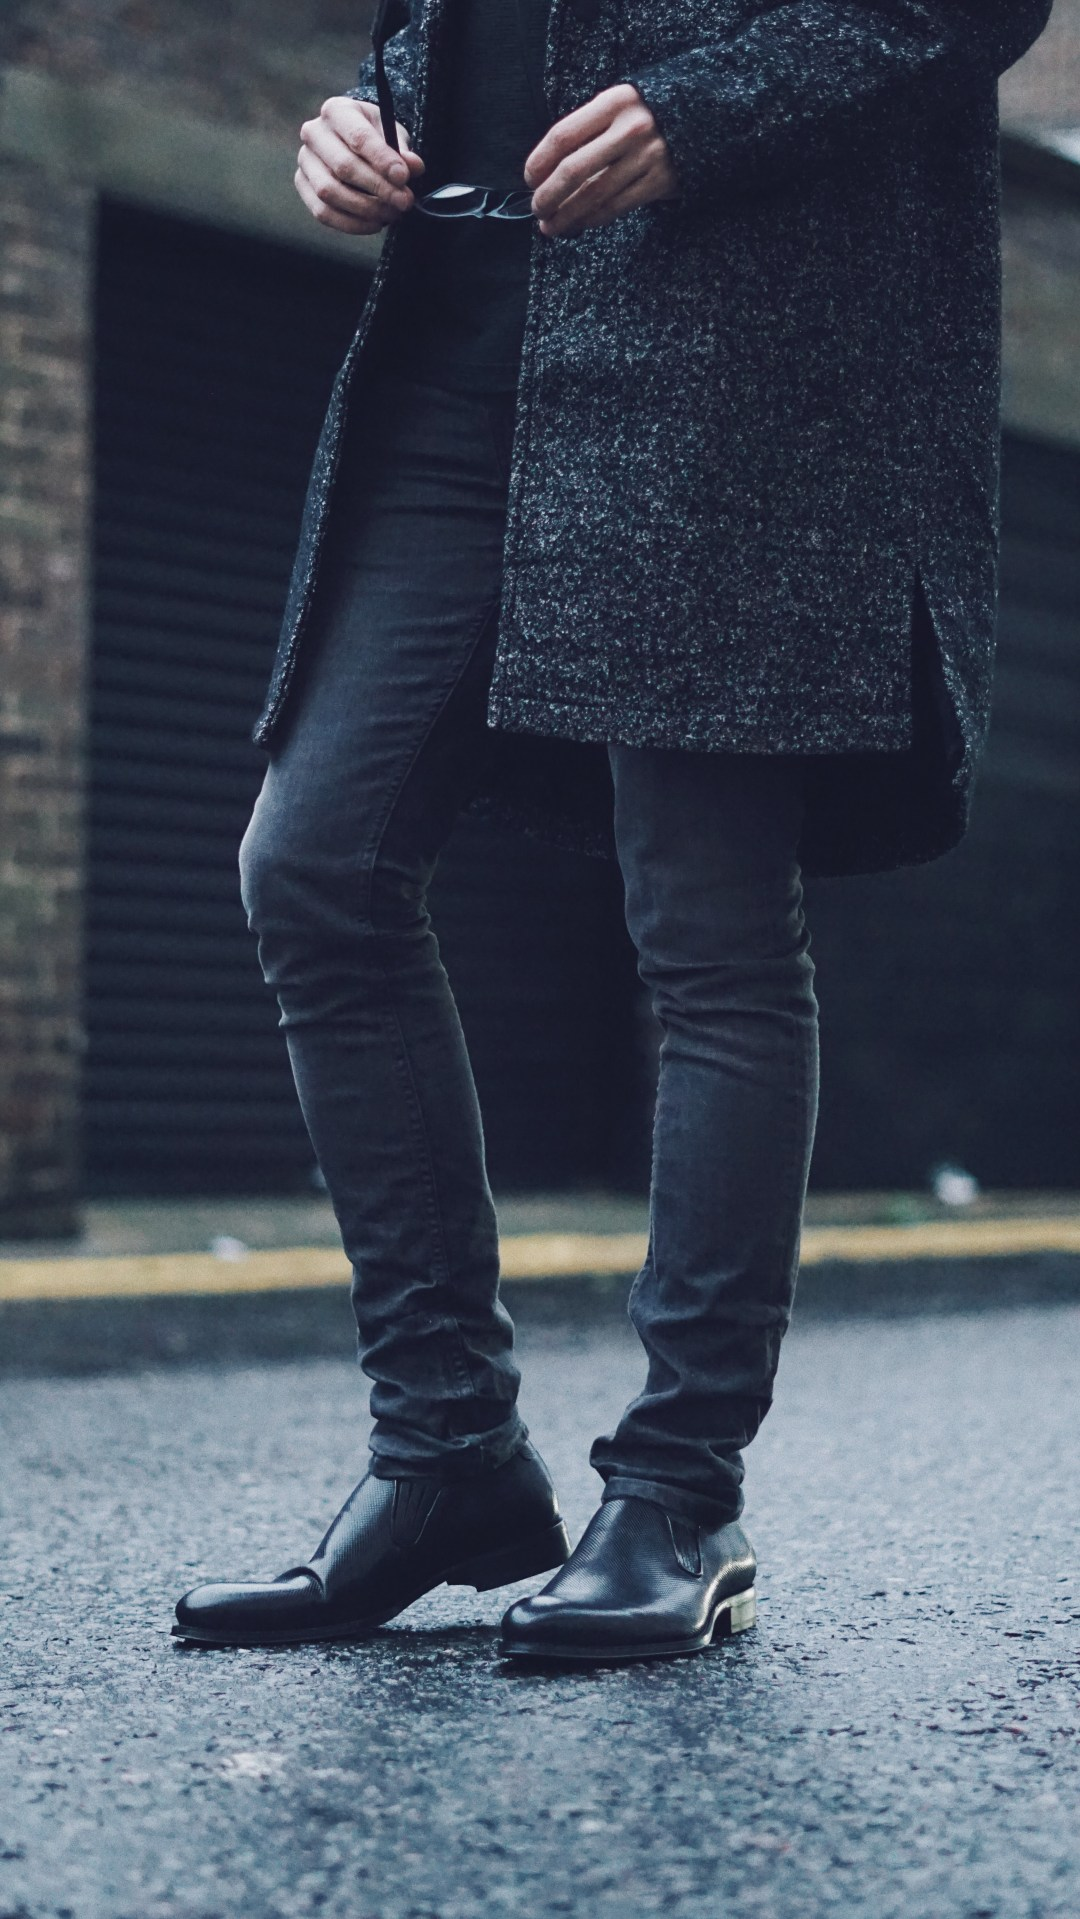 Classic Structured Coat from Bershka. Morar Cigarette Jeans from ALLSAINTS. Black Leather Loafers from Zara.